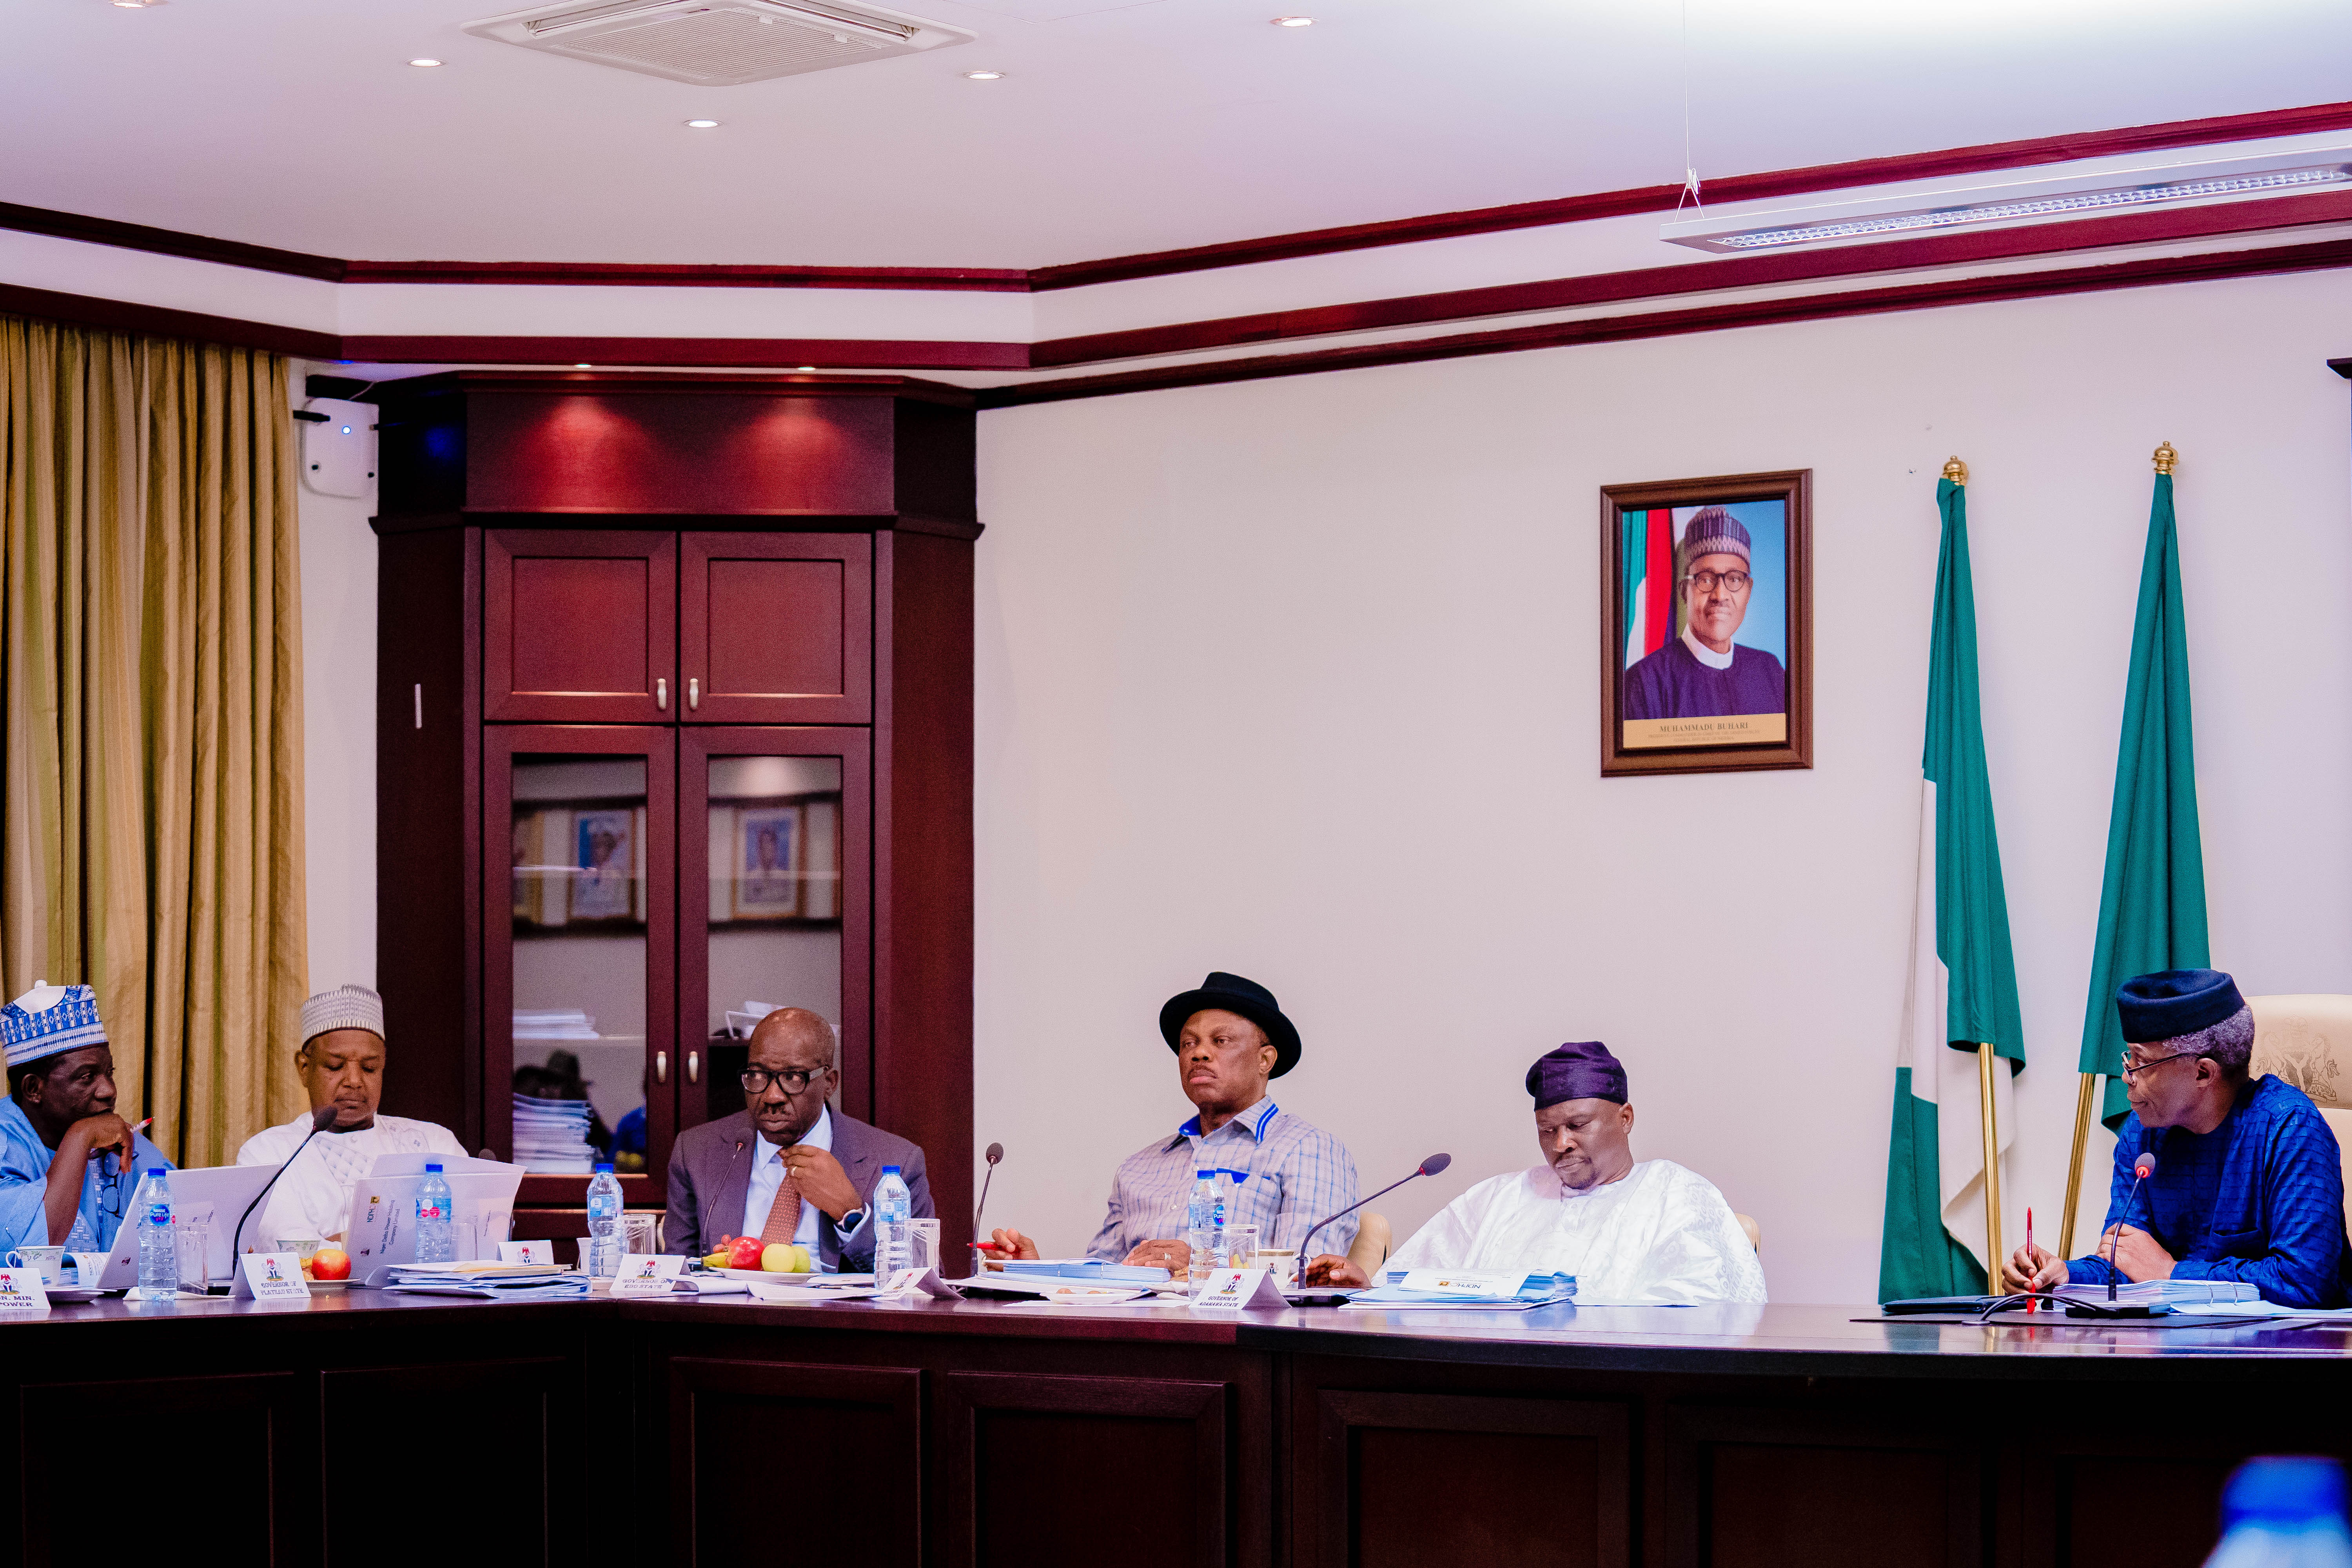 VP Osinbajo Presides Over Niger Delta Power Holding Company(NDPHC) Management Board Meeting On 22/08/2019